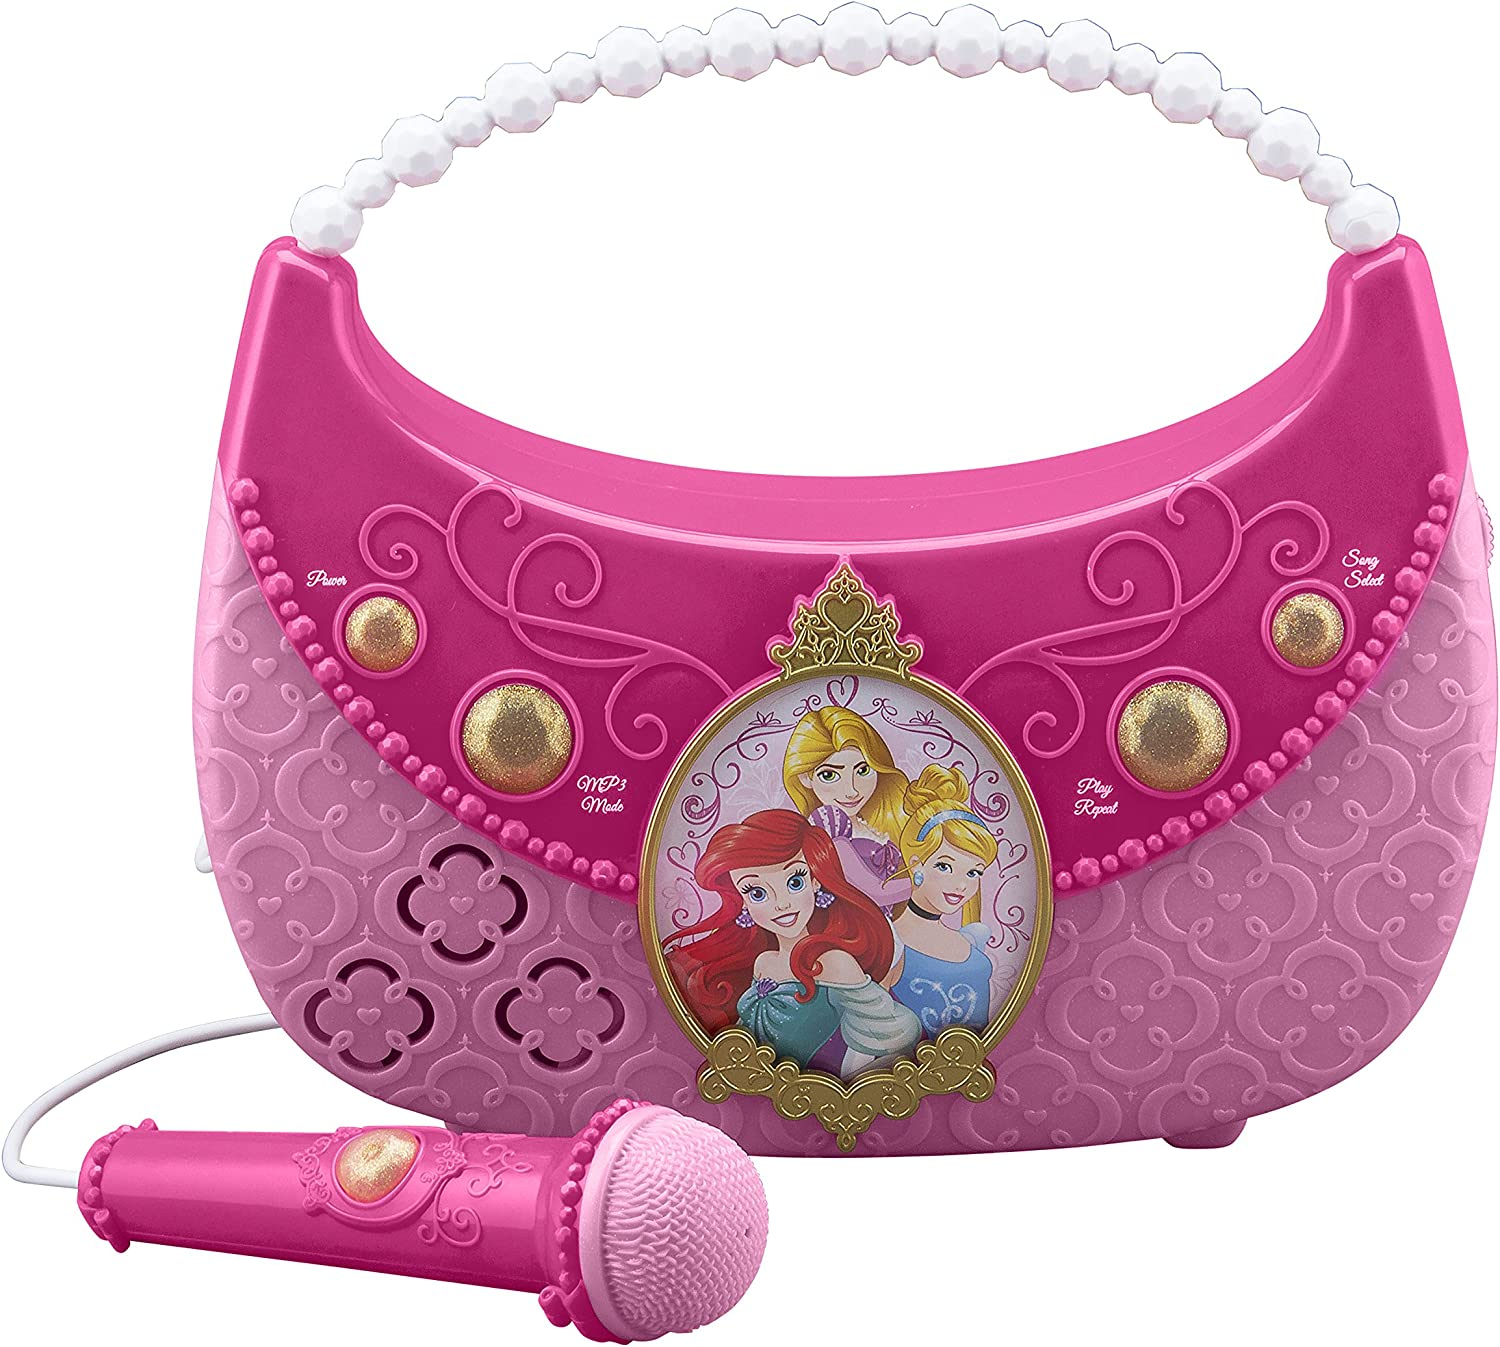 Disney Princess Don't miss the campaign sing Along OFFicial Boombox